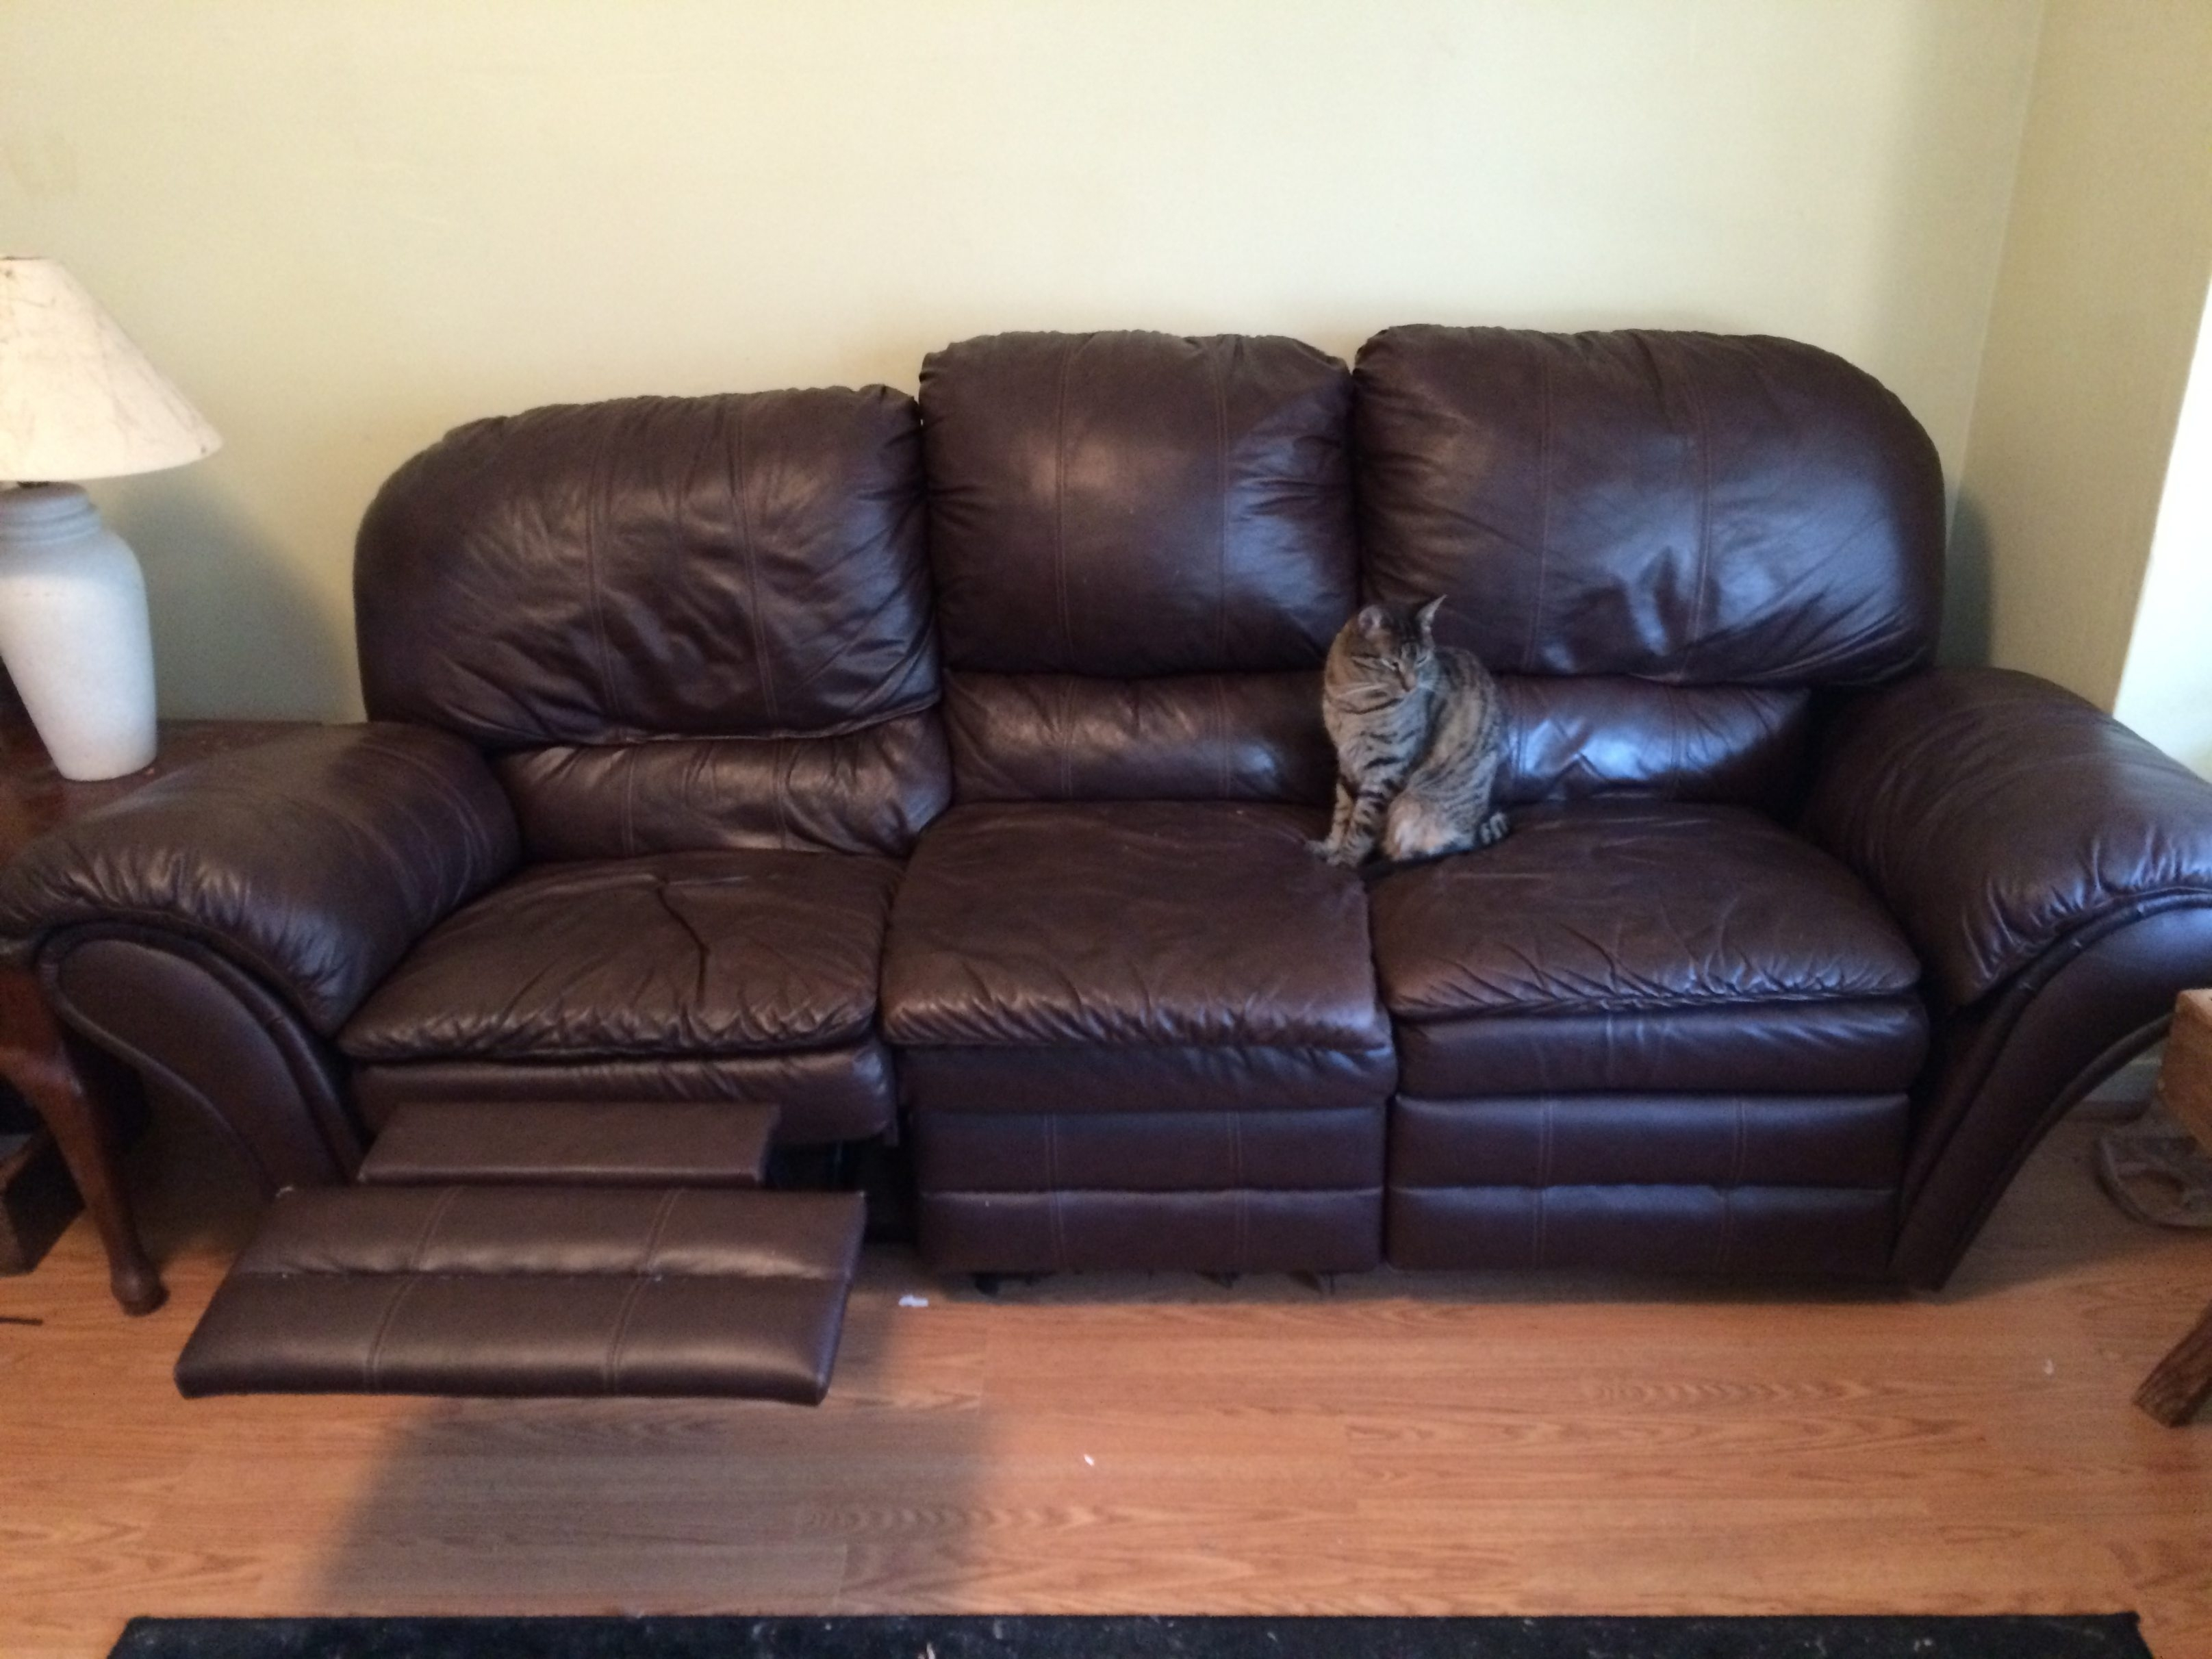 Free Sofa Craigslist #5 Awesome Leather Couch Craigslist 86 In Sofas Throughout Craigslist Leather Sofas (Image 3 of 10)